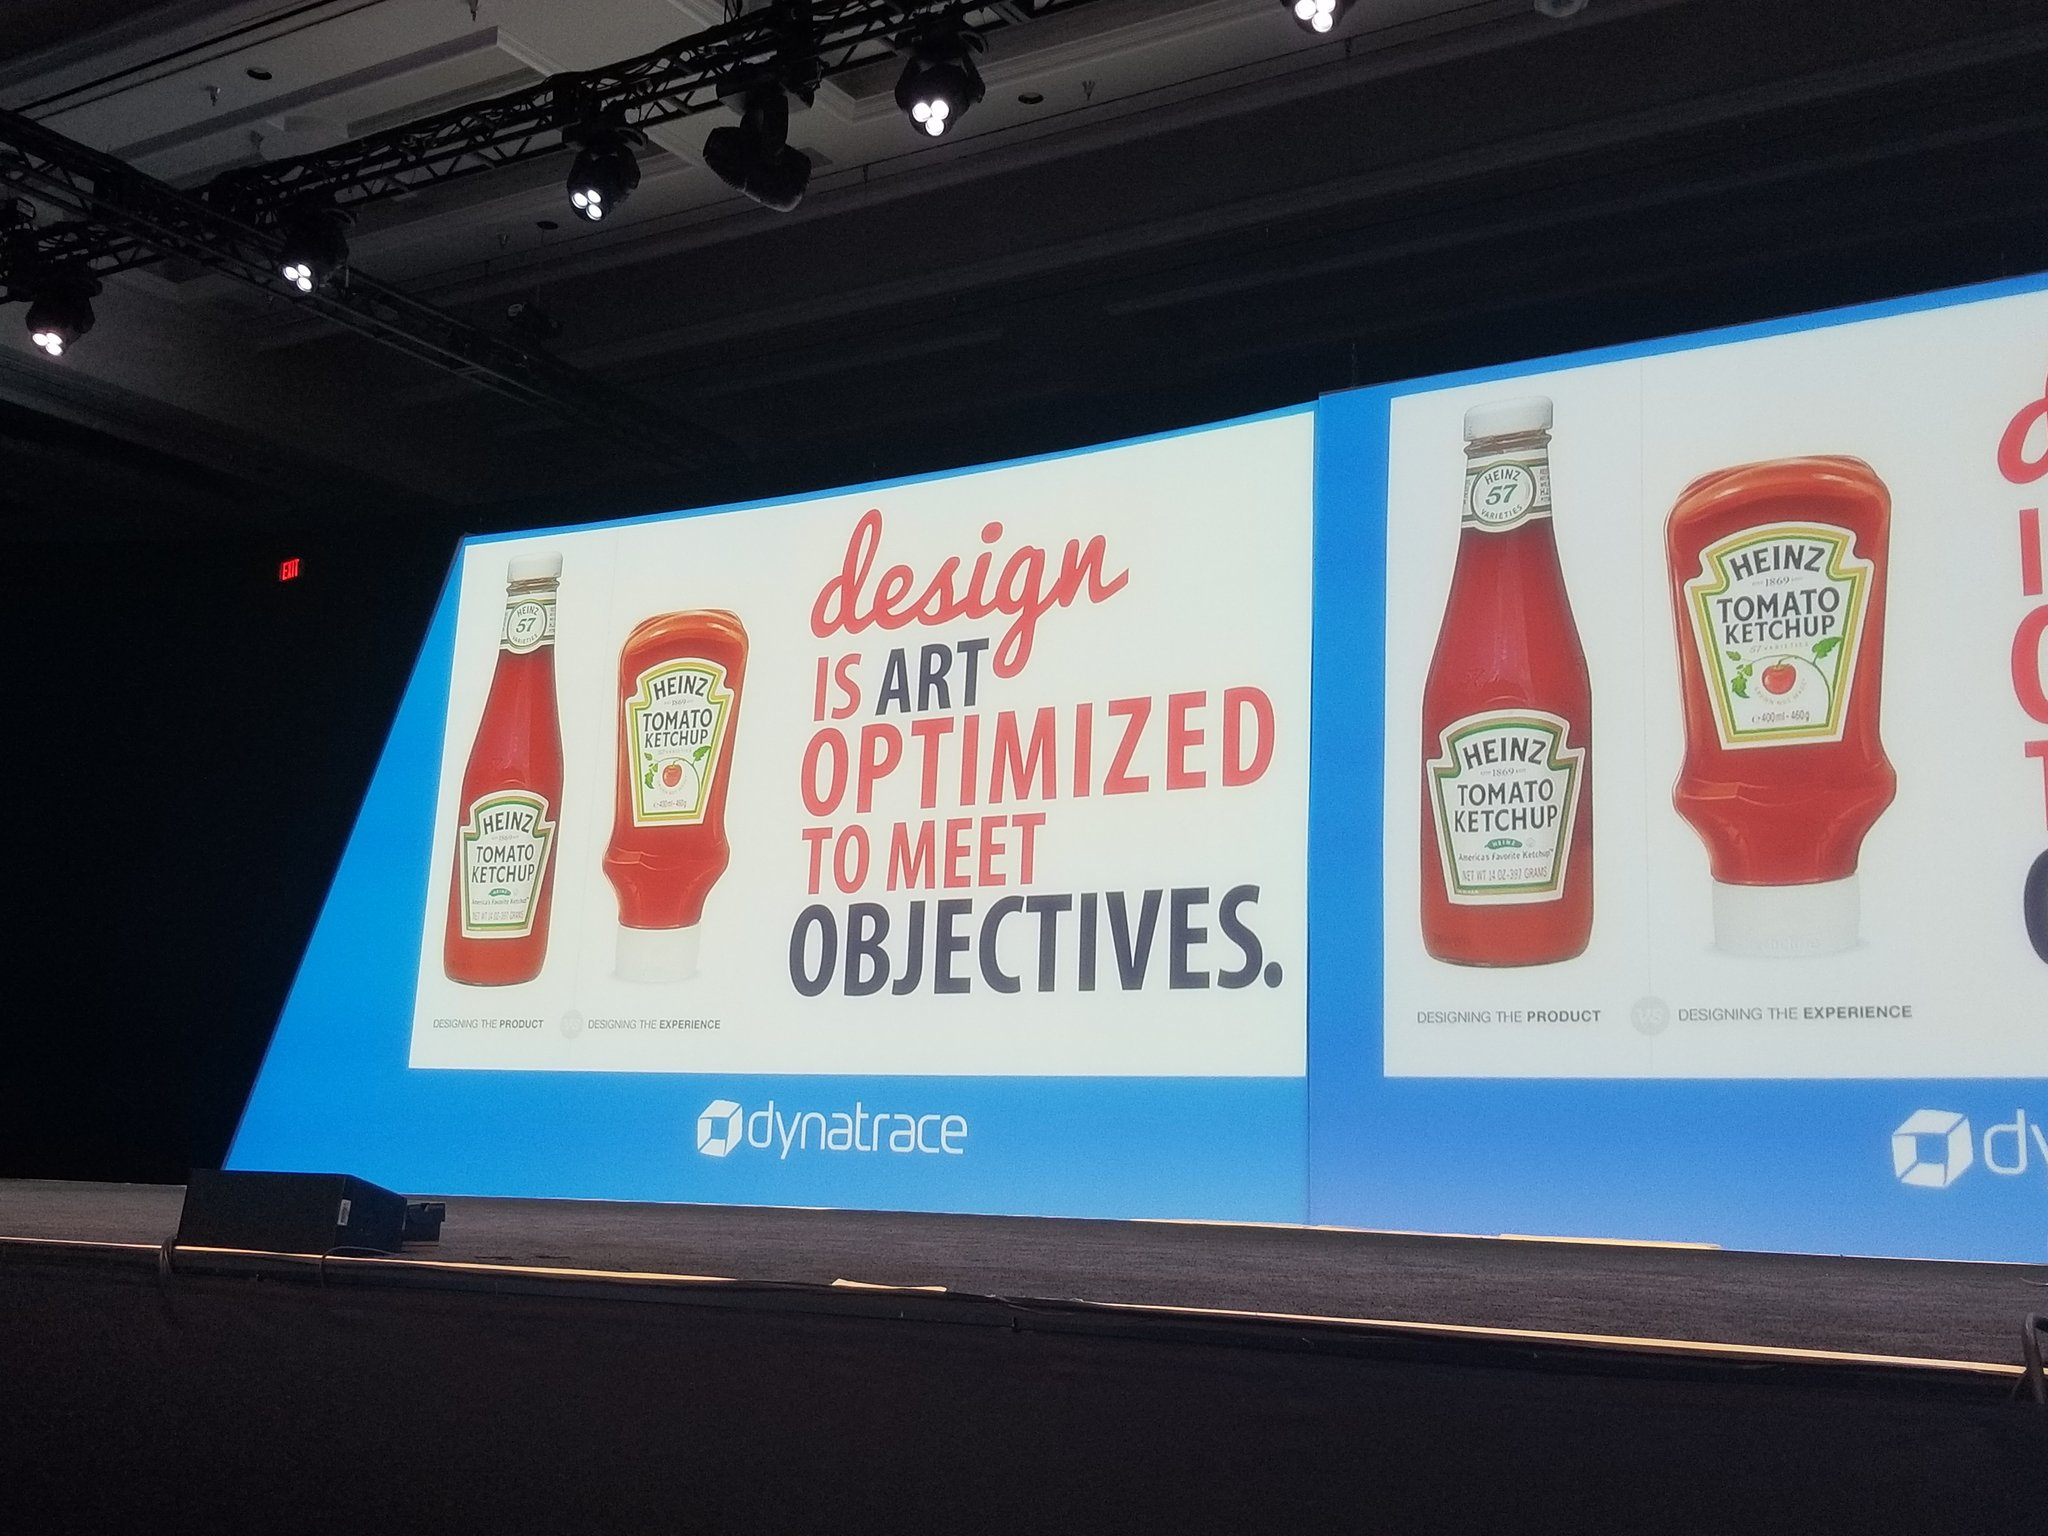 Everyone has a strategy for getting ketchup out of the bottle. How many years did it take for us to realise there is an easier way? Challenge conventional thinking @briansolis #Perform2018 @Dynatrace https://t.co/B7HmYm1dKn